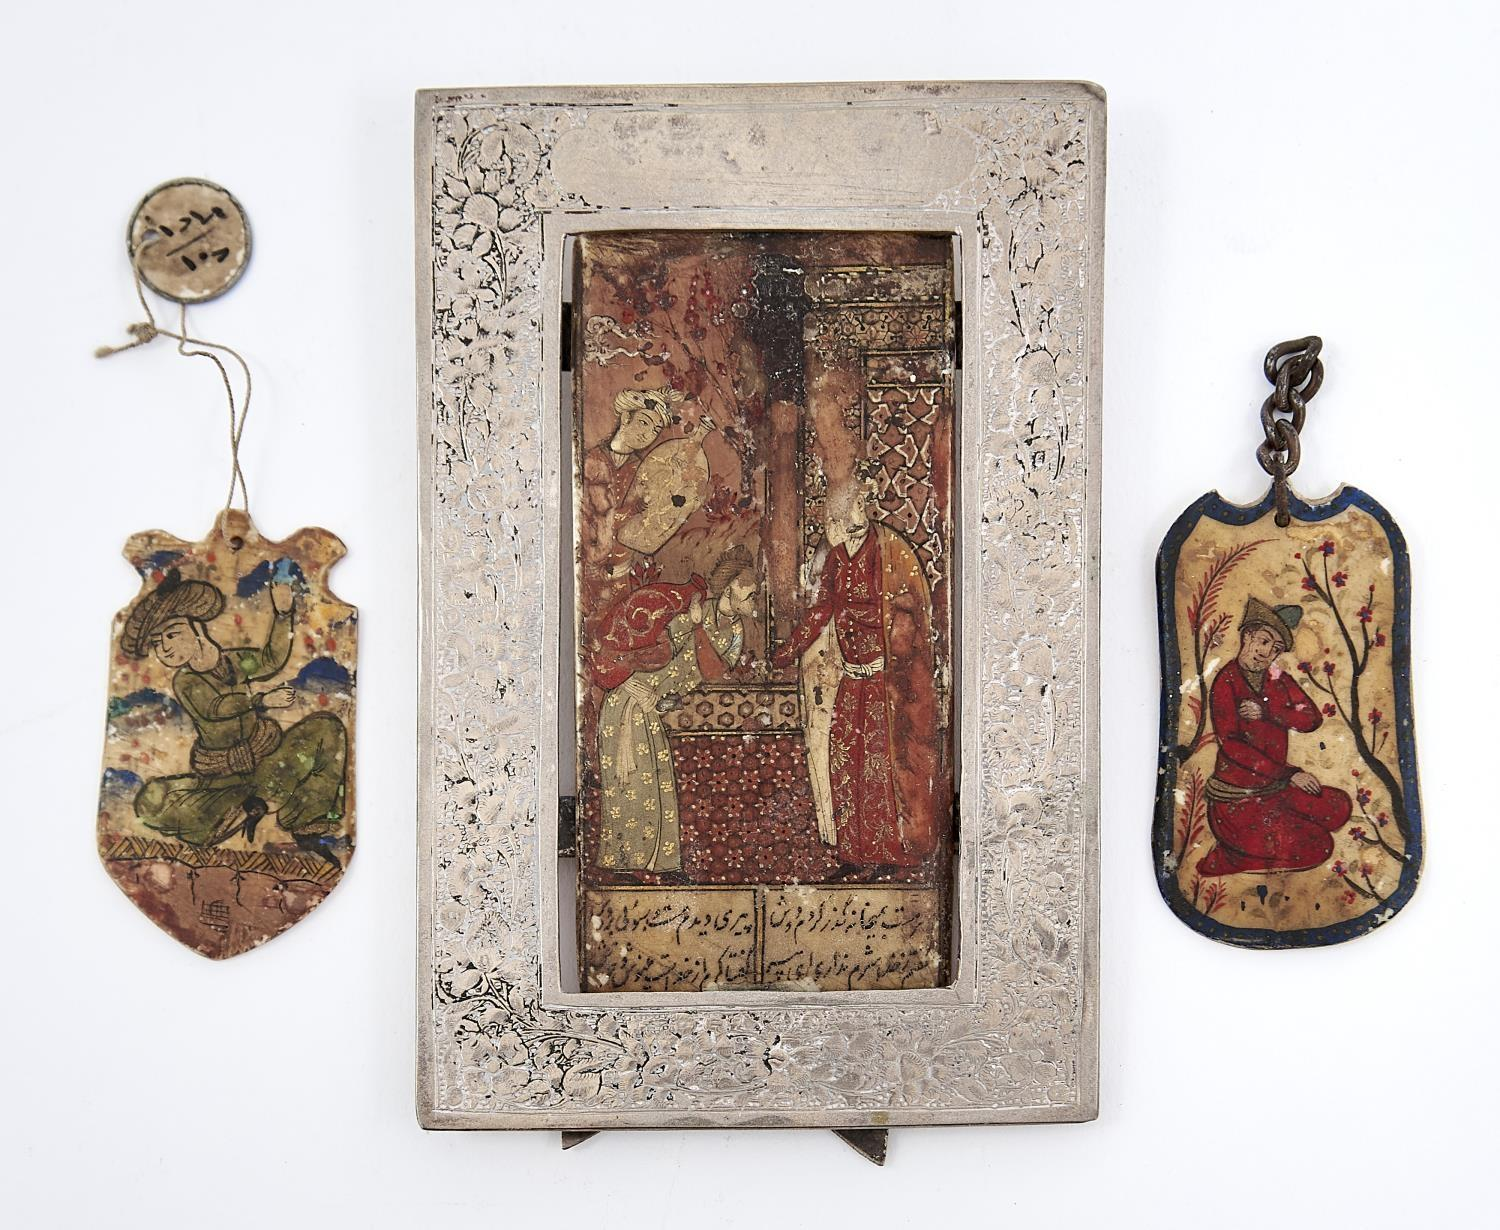 THREE MUGHAL MINIATURE POLYCHROME BONE AMULETS AND A TABLET, 19TH/20TH C, ONE WITH INSCRIPTION, 90 X